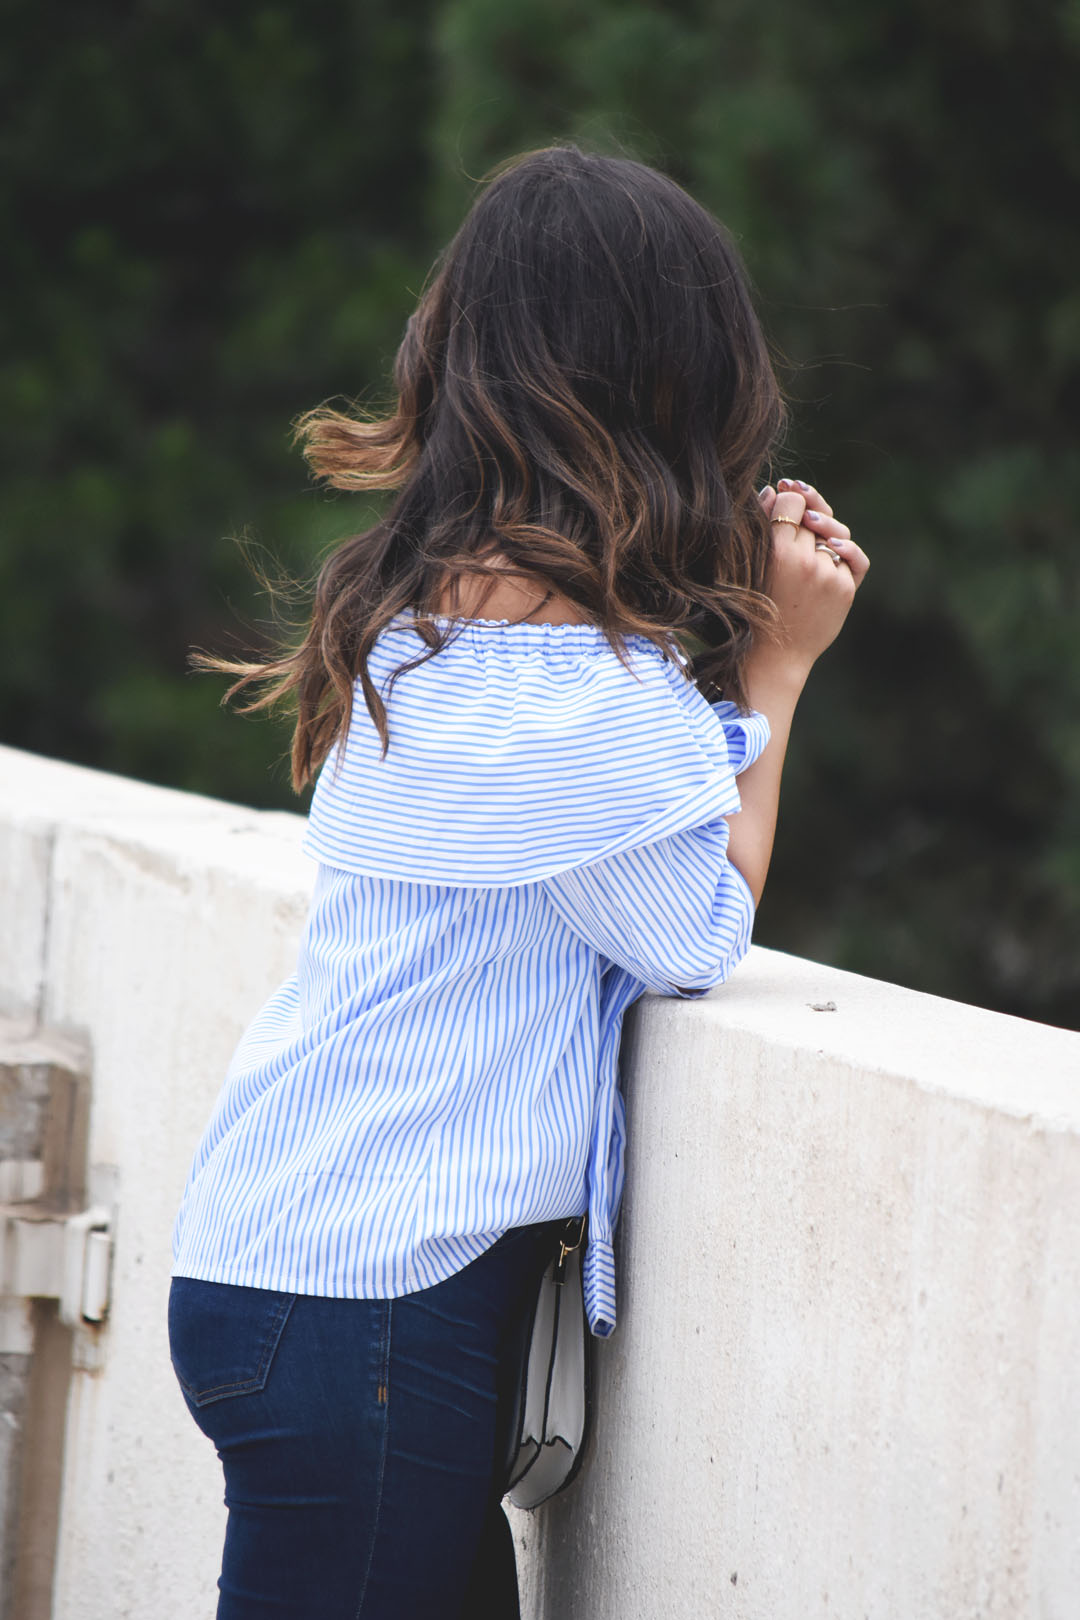 Carolina Hella of Chic Talk wearing an SheInside off the shoulder blue striped top and Madewell jeans